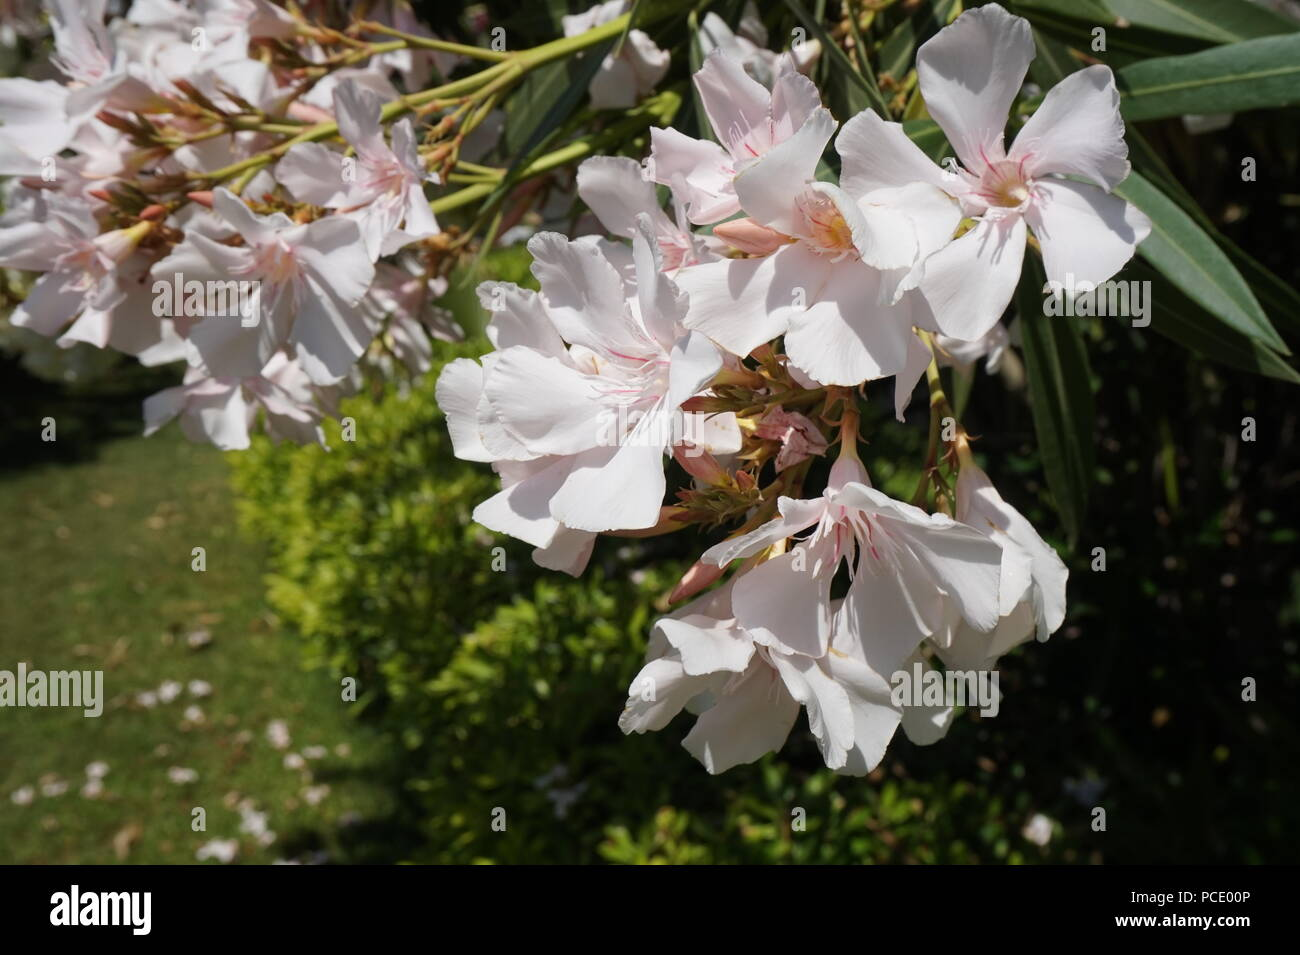 Oleander Shrub With Delicate White Flowers Beautiful Floral